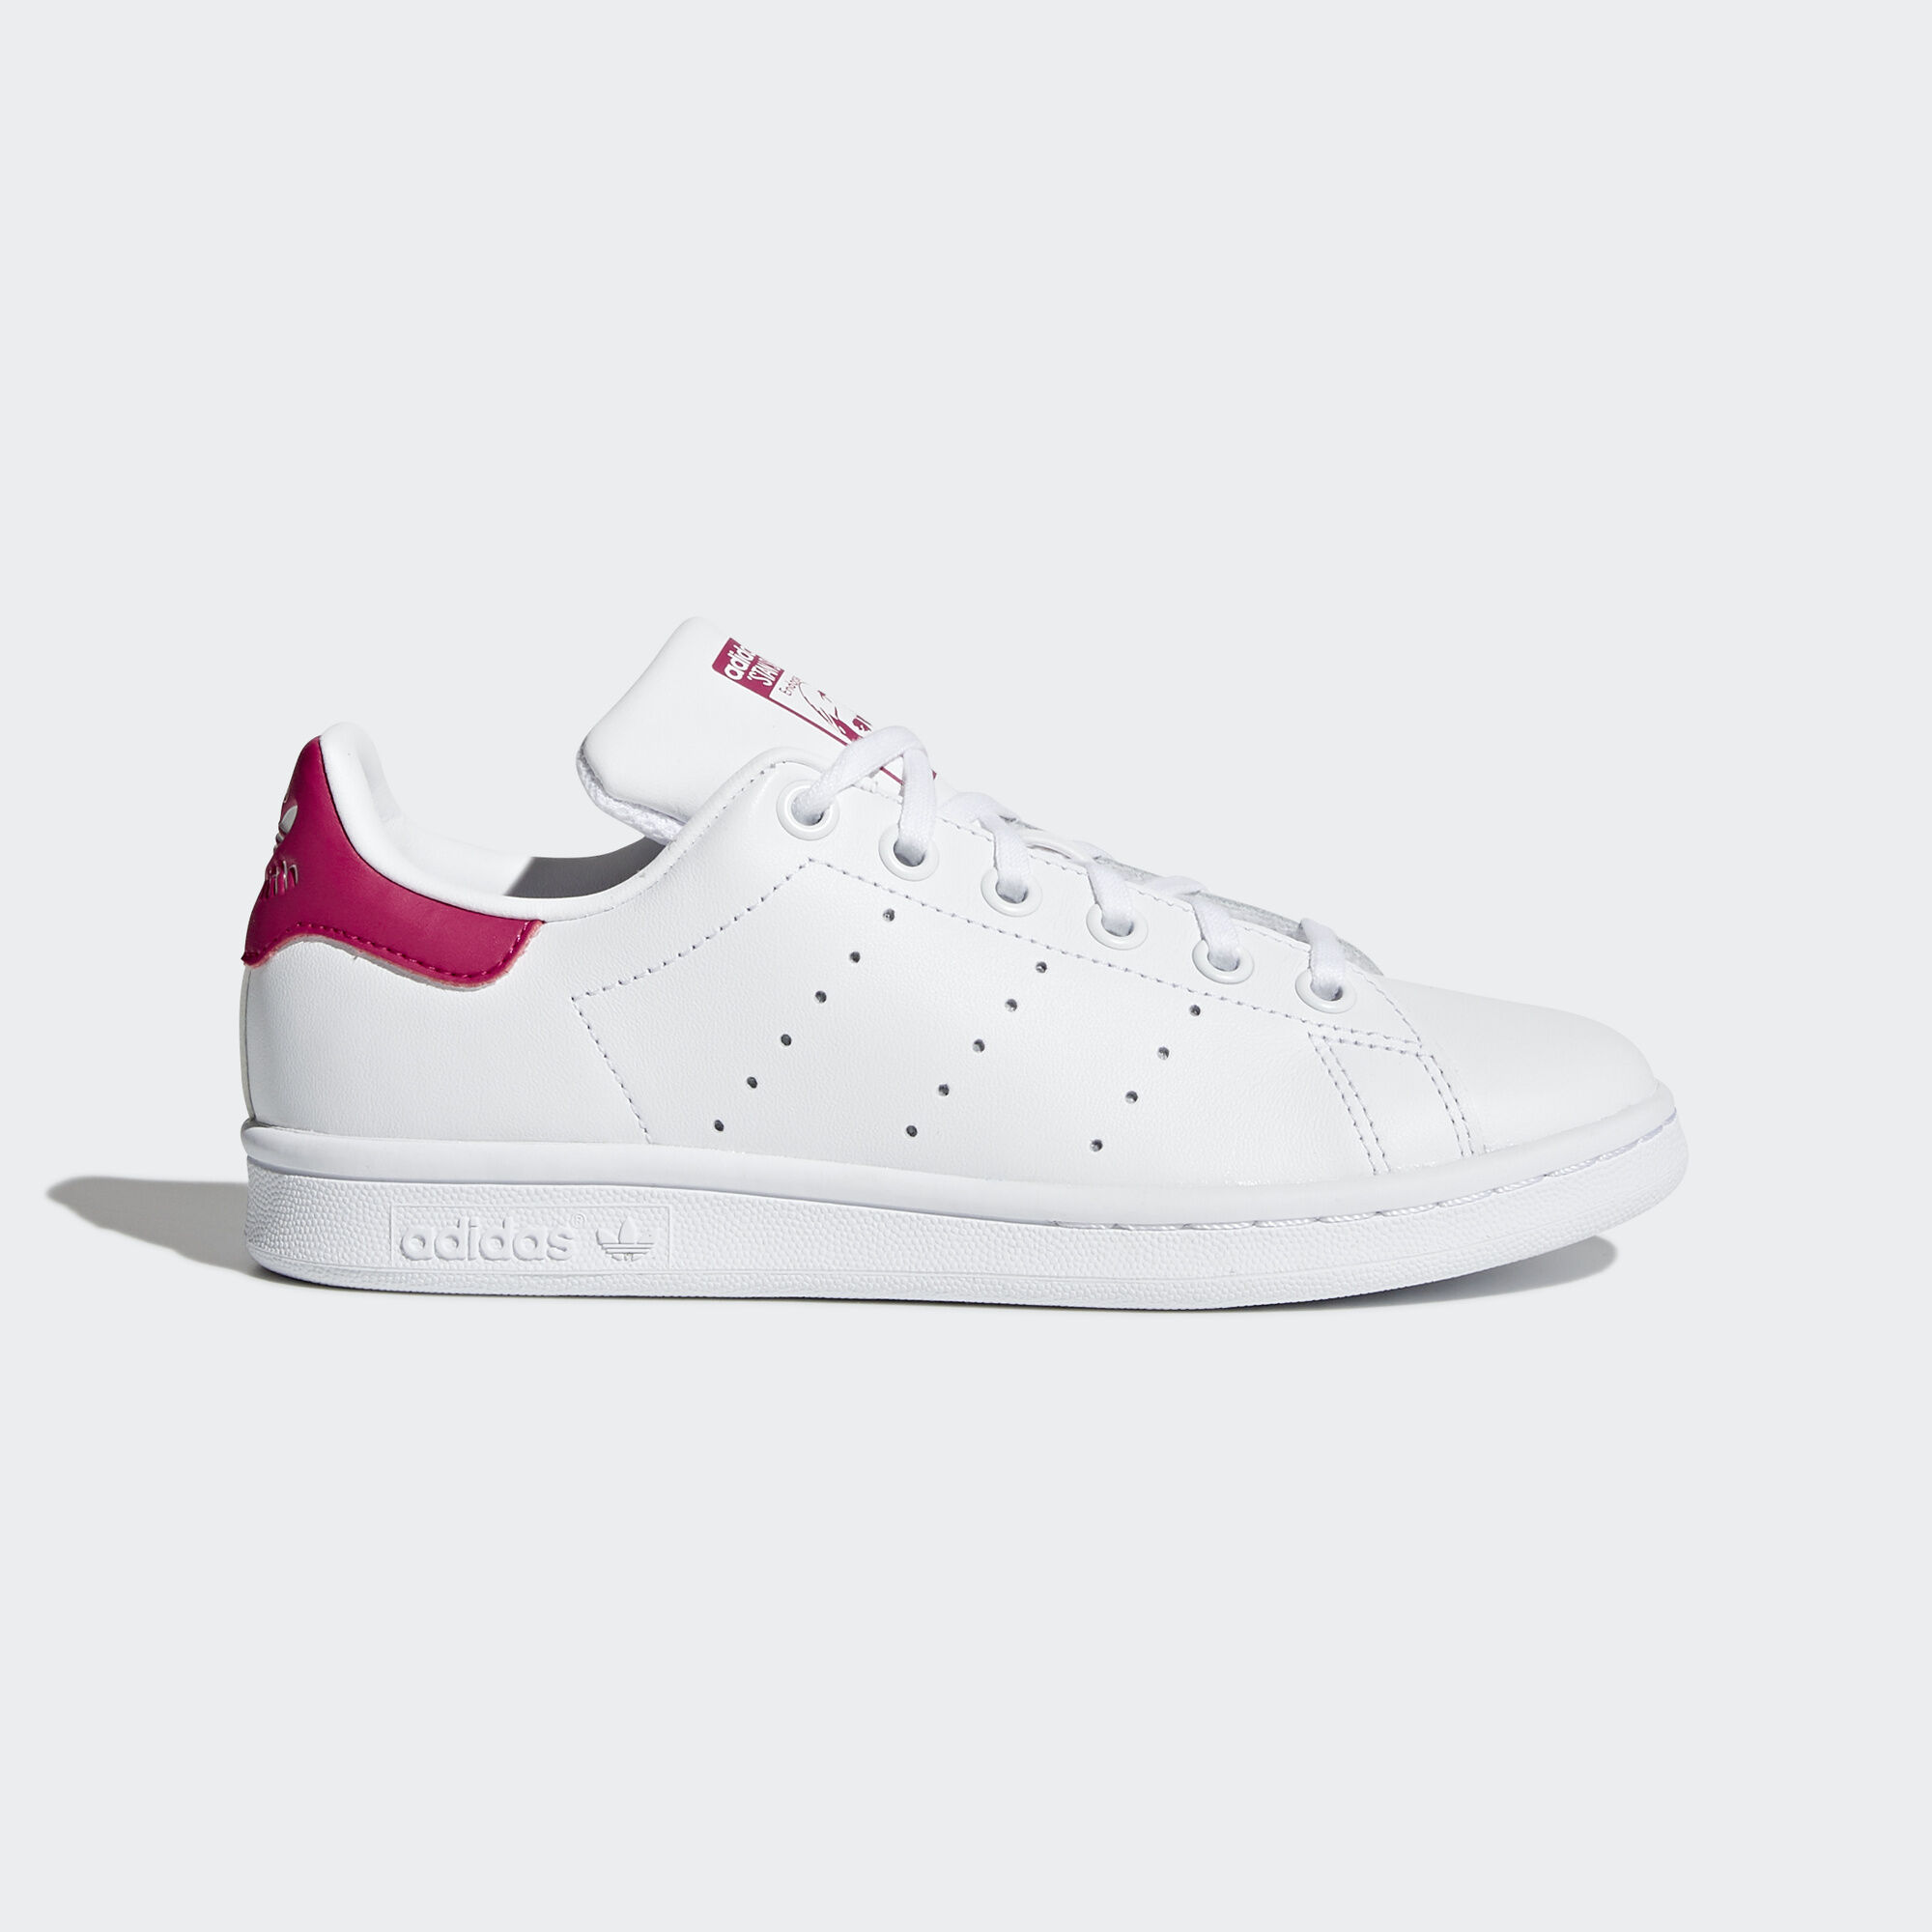 adidas superstar vit rosa